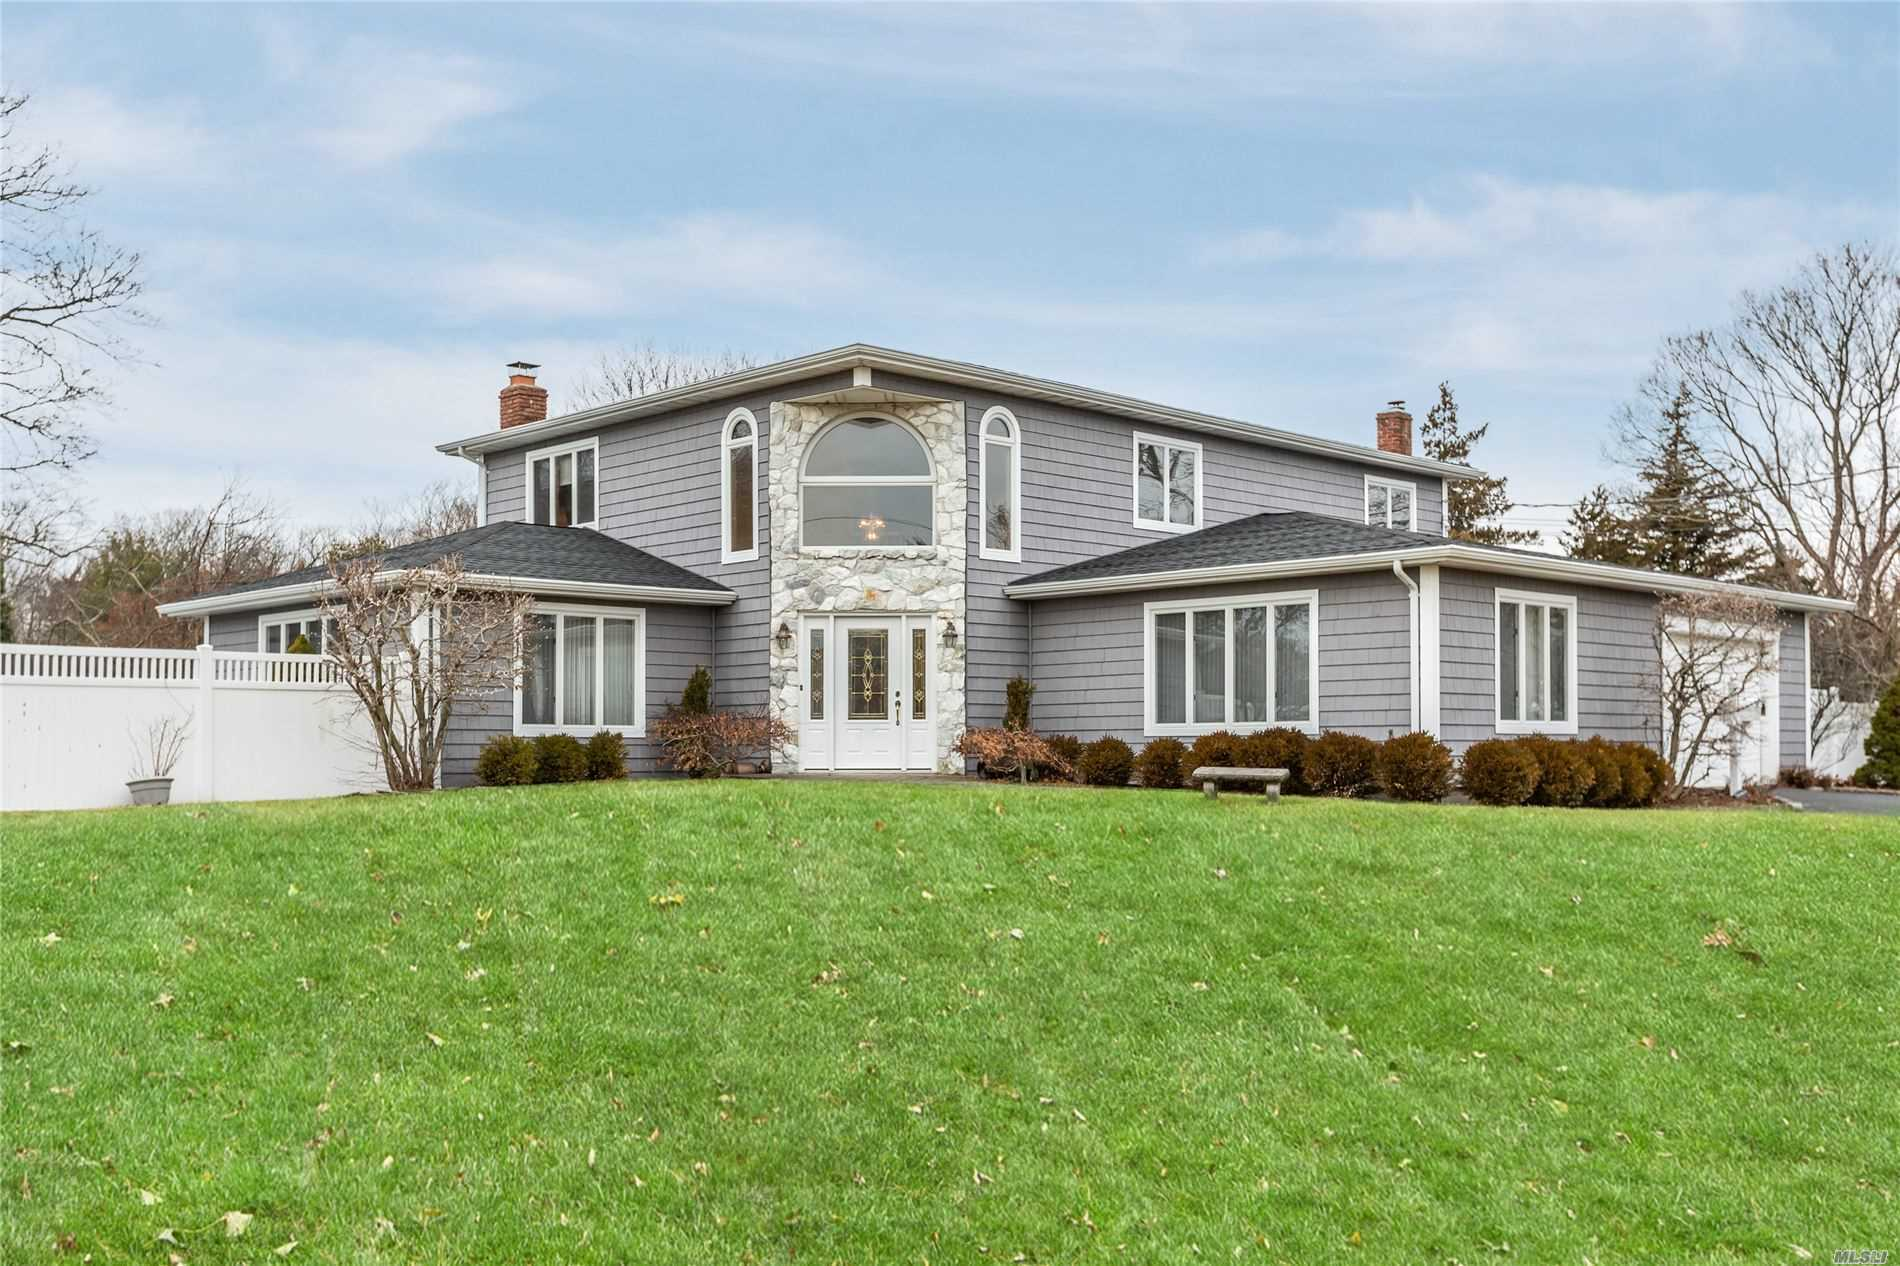 226 Bay Ave - Bayport, New York